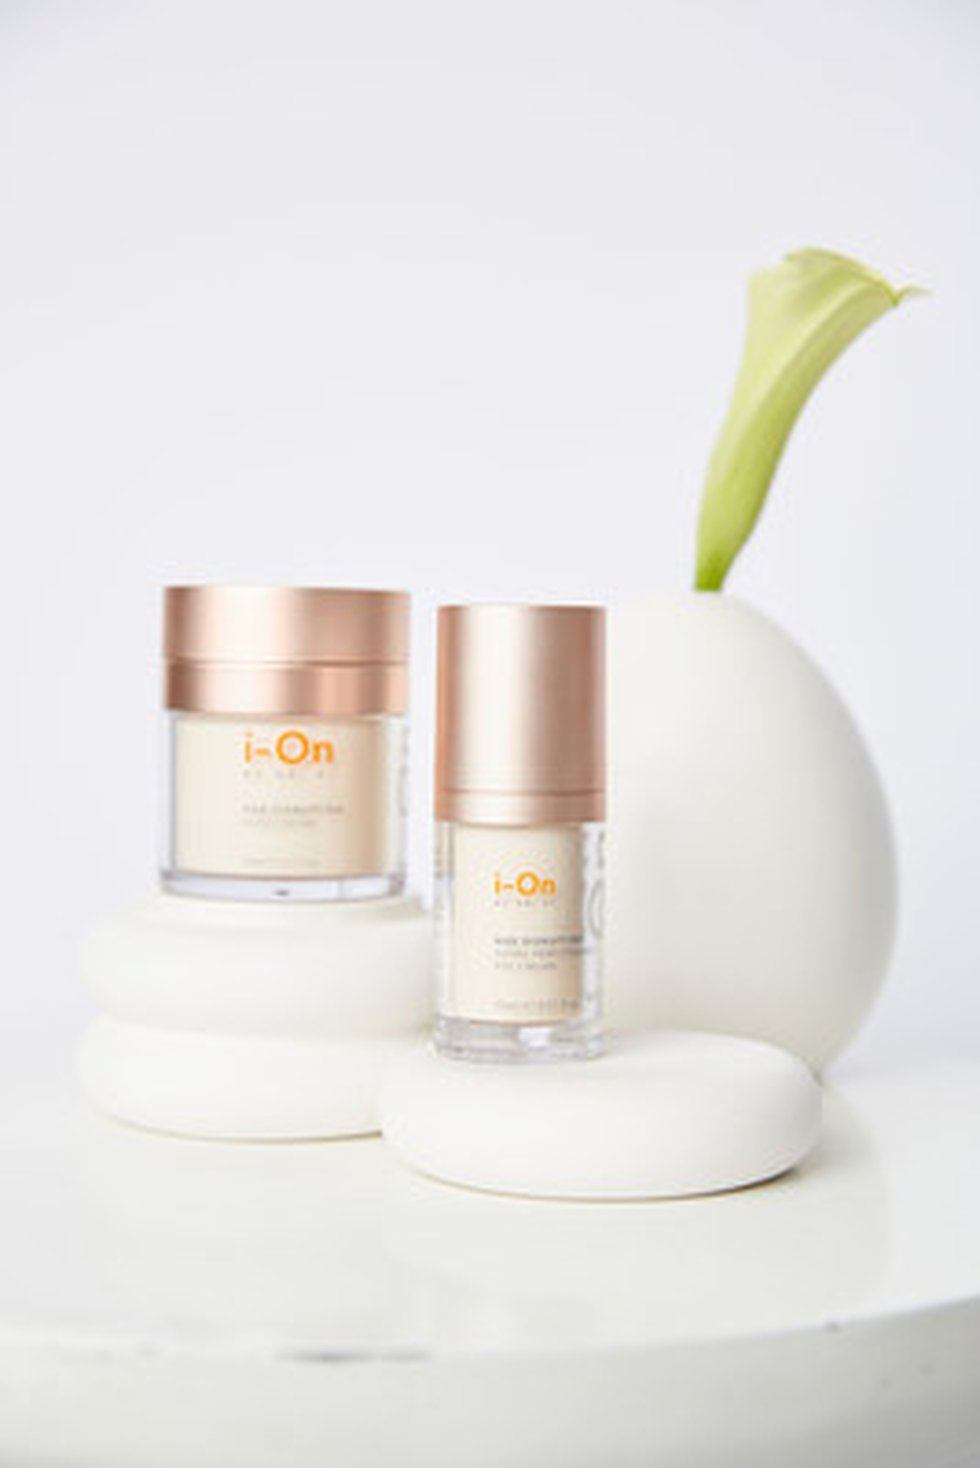 i-On Age Disrupting Skincare is now available on Nordstrom.com.